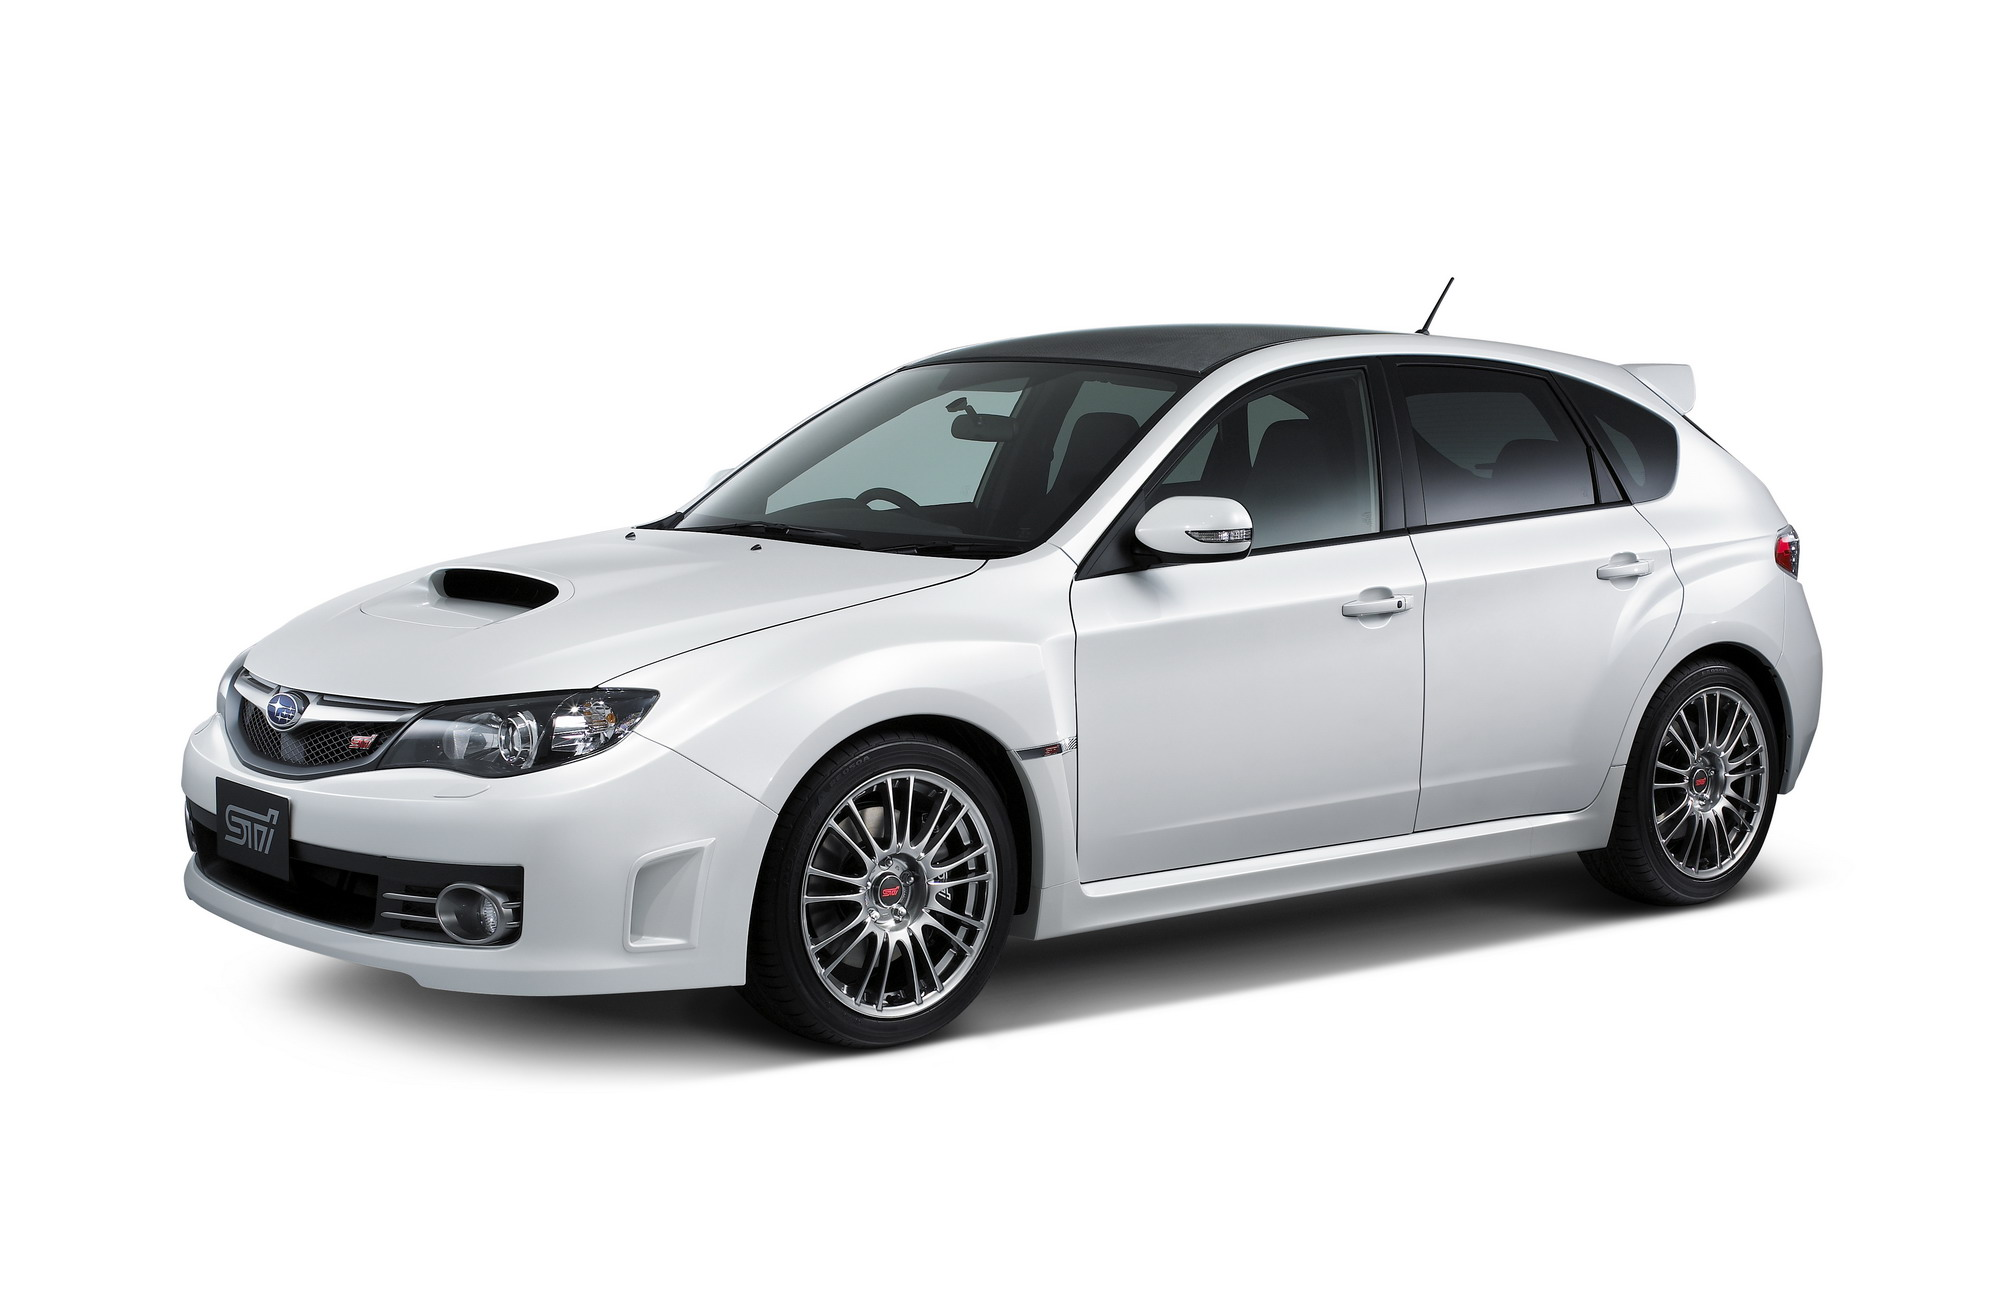 2010 subaru impreza wrx sti carbon review top speed. Black Bedroom Furniture Sets. Home Design Ideas